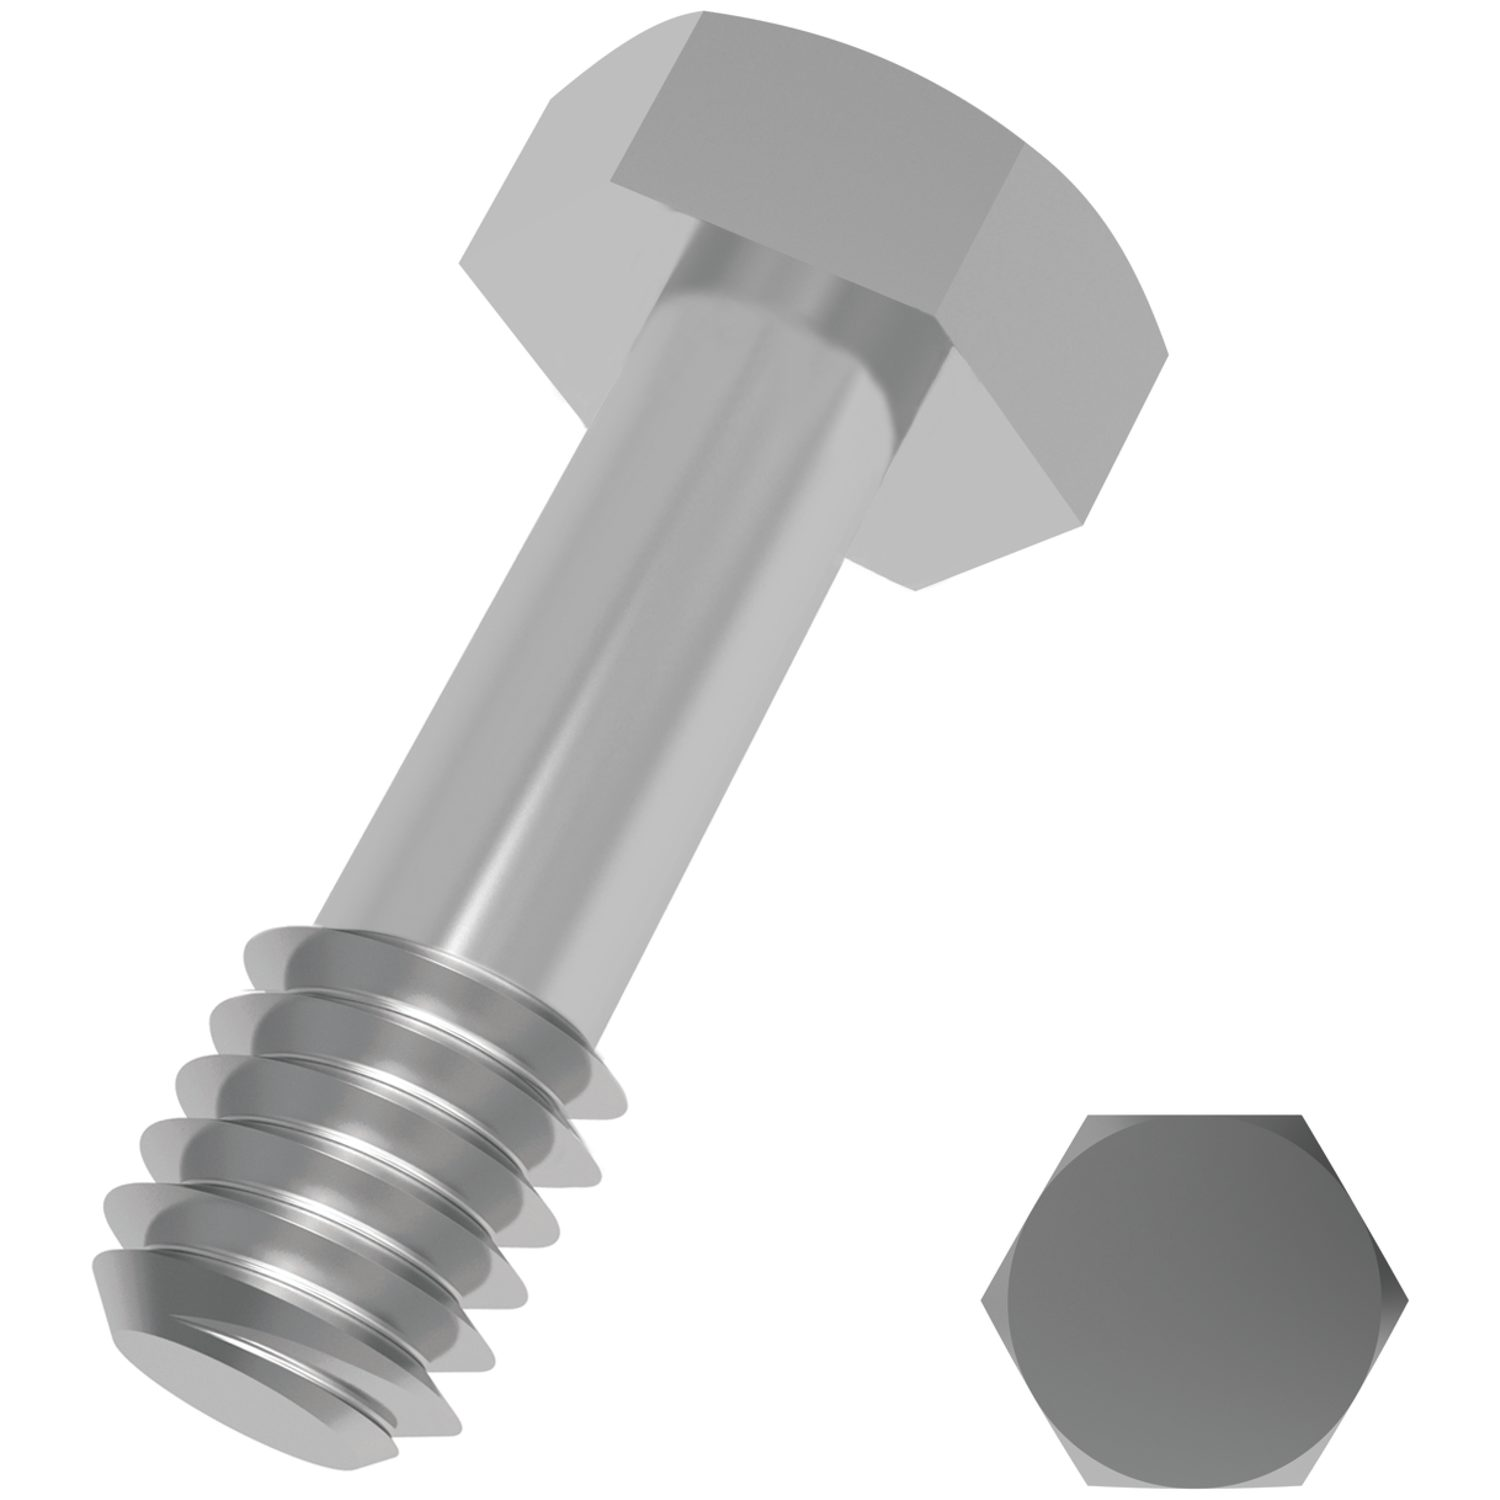 P0158 - Captive Hex Bolts A2 stainless